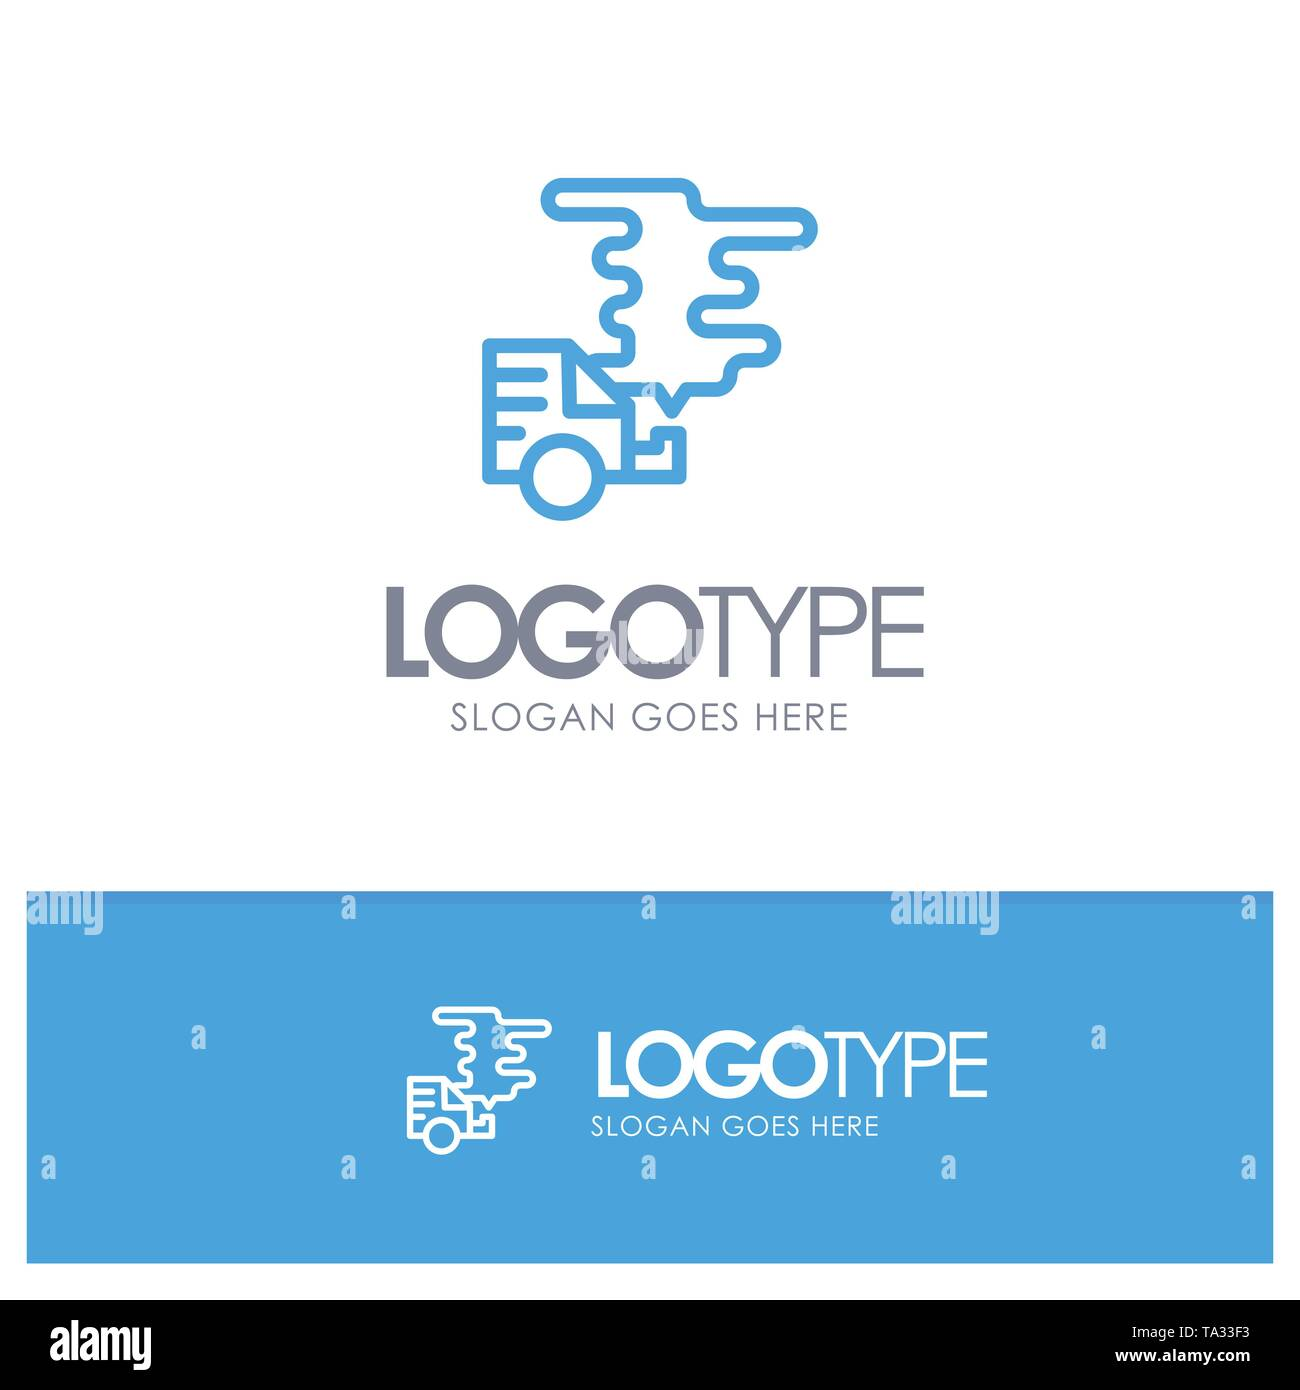 Automobile, Car, Emission, Gas, Pollution Blue outLine Logo with place for tagline - Stock Image